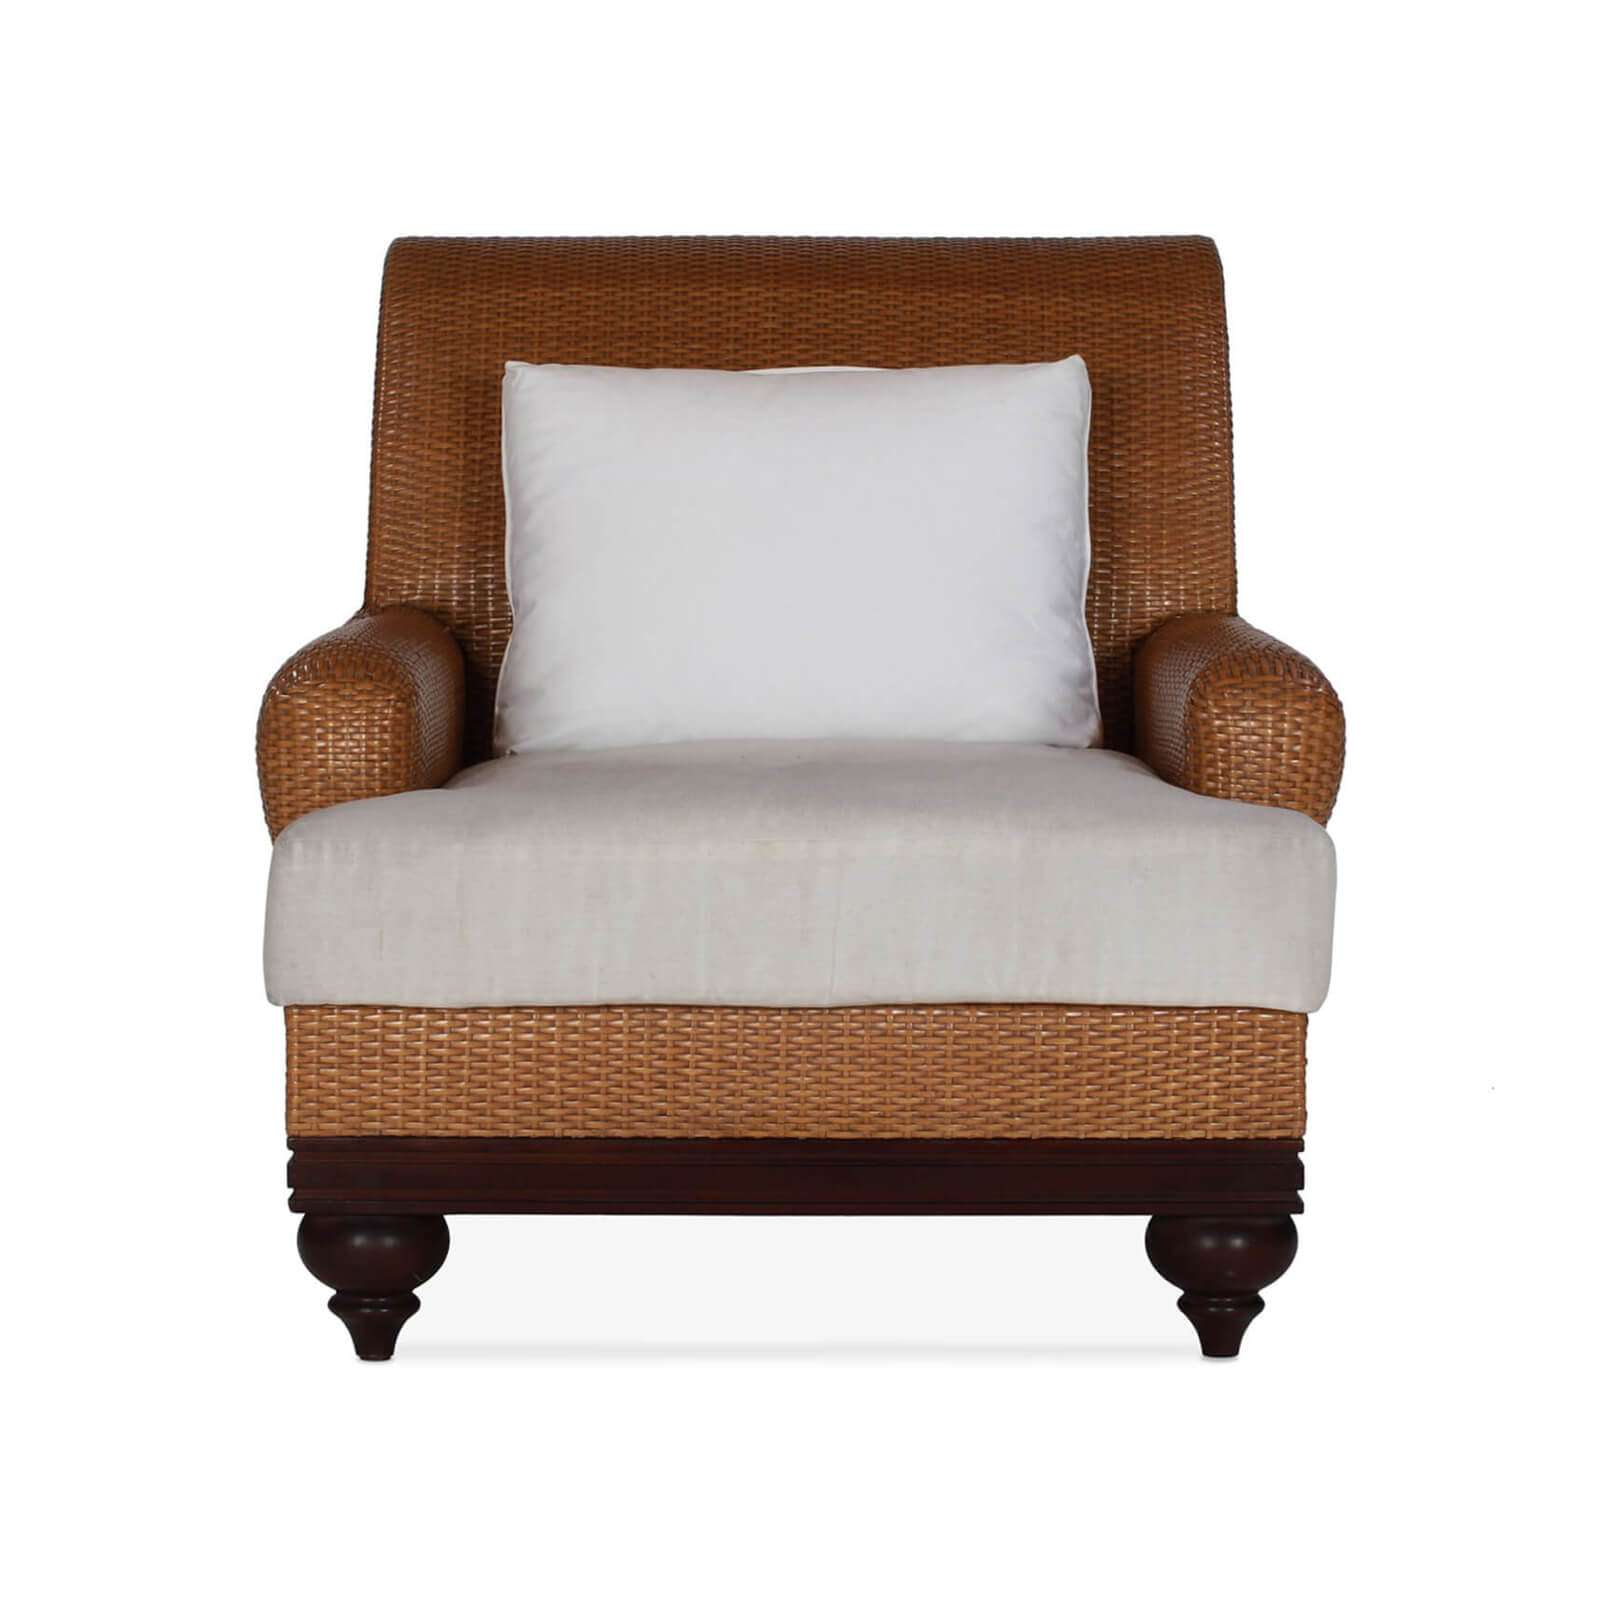 PLANTATION CLUB CHAIR 23 - STUART MEMBERY HOME COLLECTION